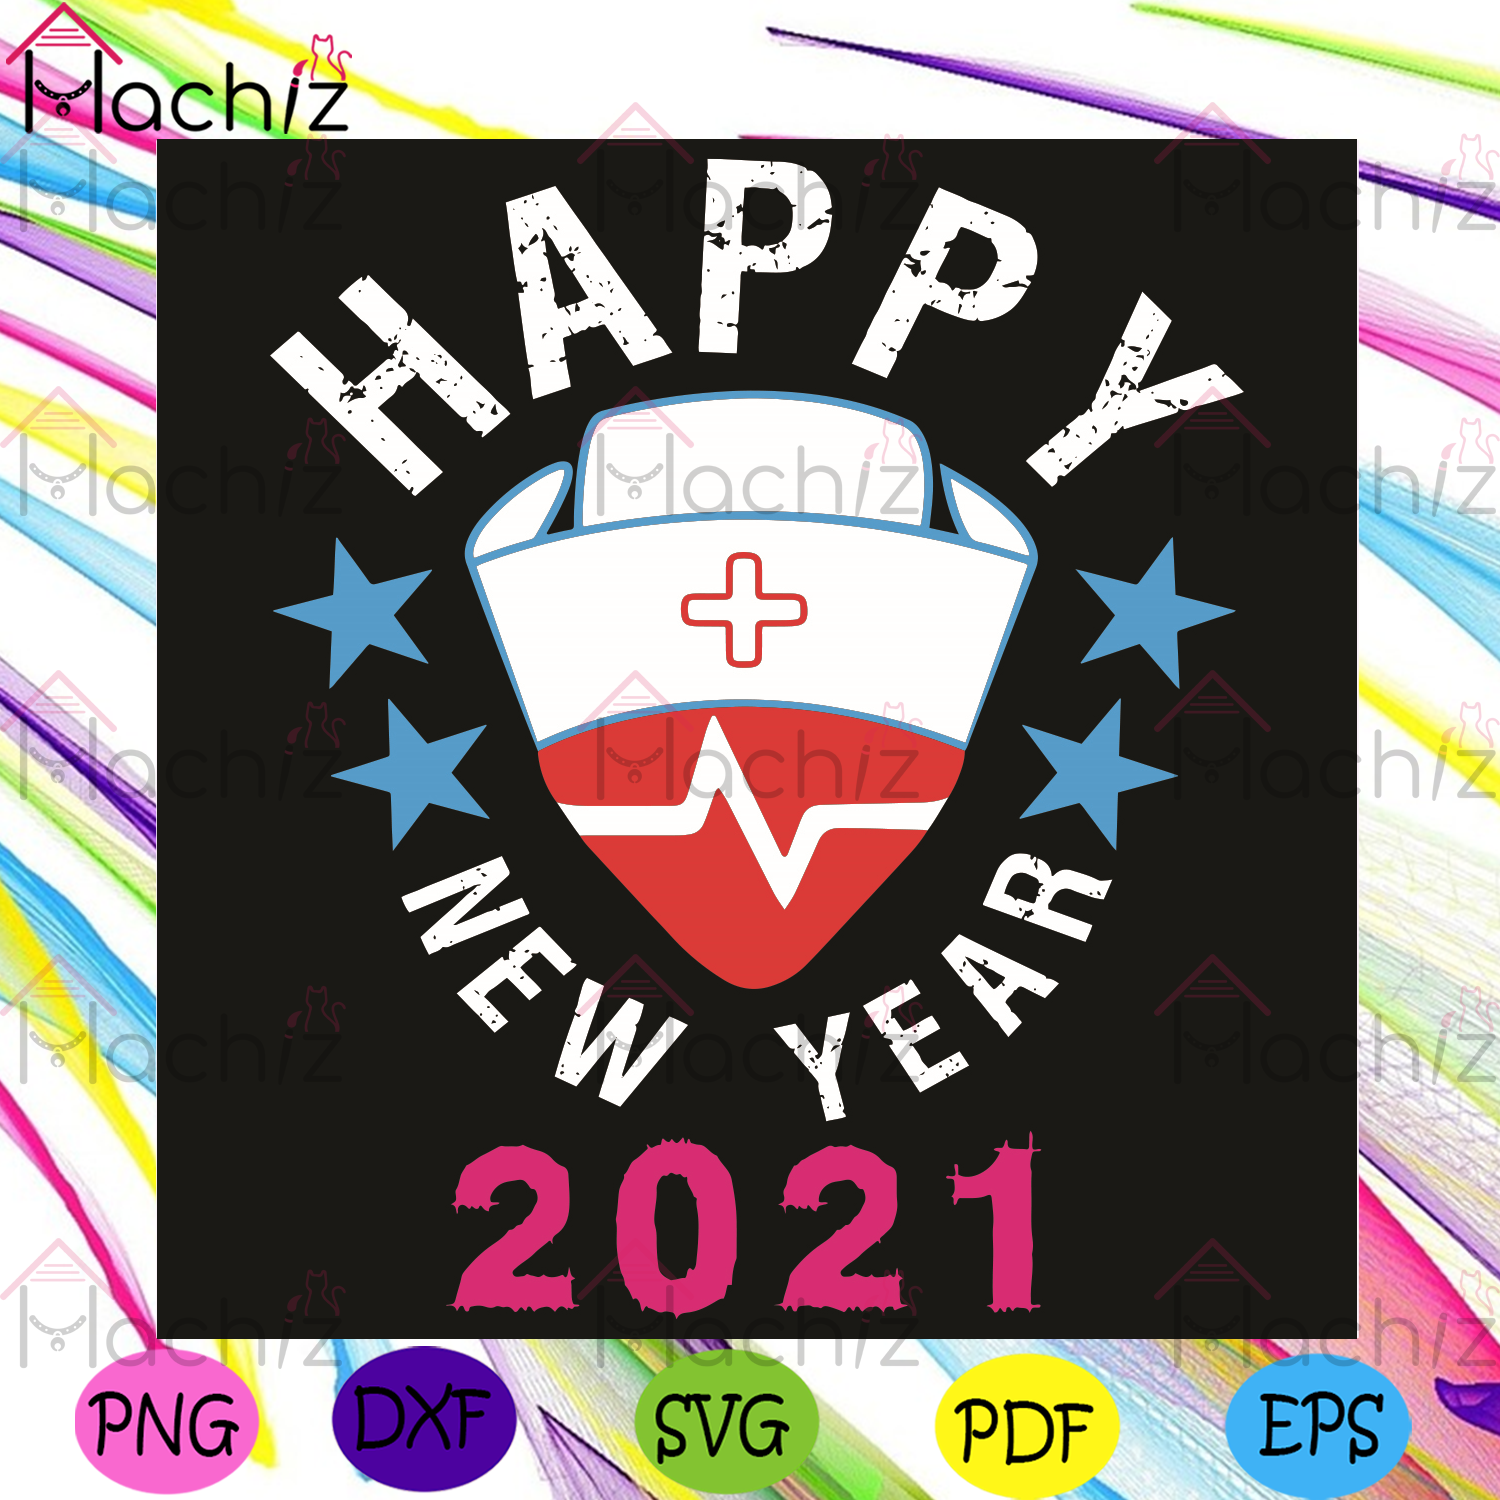 Happy New Year 2021 Svg, Trending Svg, 2021 Svg, Happy New Year Svg, Nurse Svg, Nurse Life Svg, Strong Life Svg, Heartbeat Svg, Red Cross Svg, 2020 Svg, Healing Svg, Healthy Life Svg, Happy Svg, A Rough Year Svg, Happy Year Svg